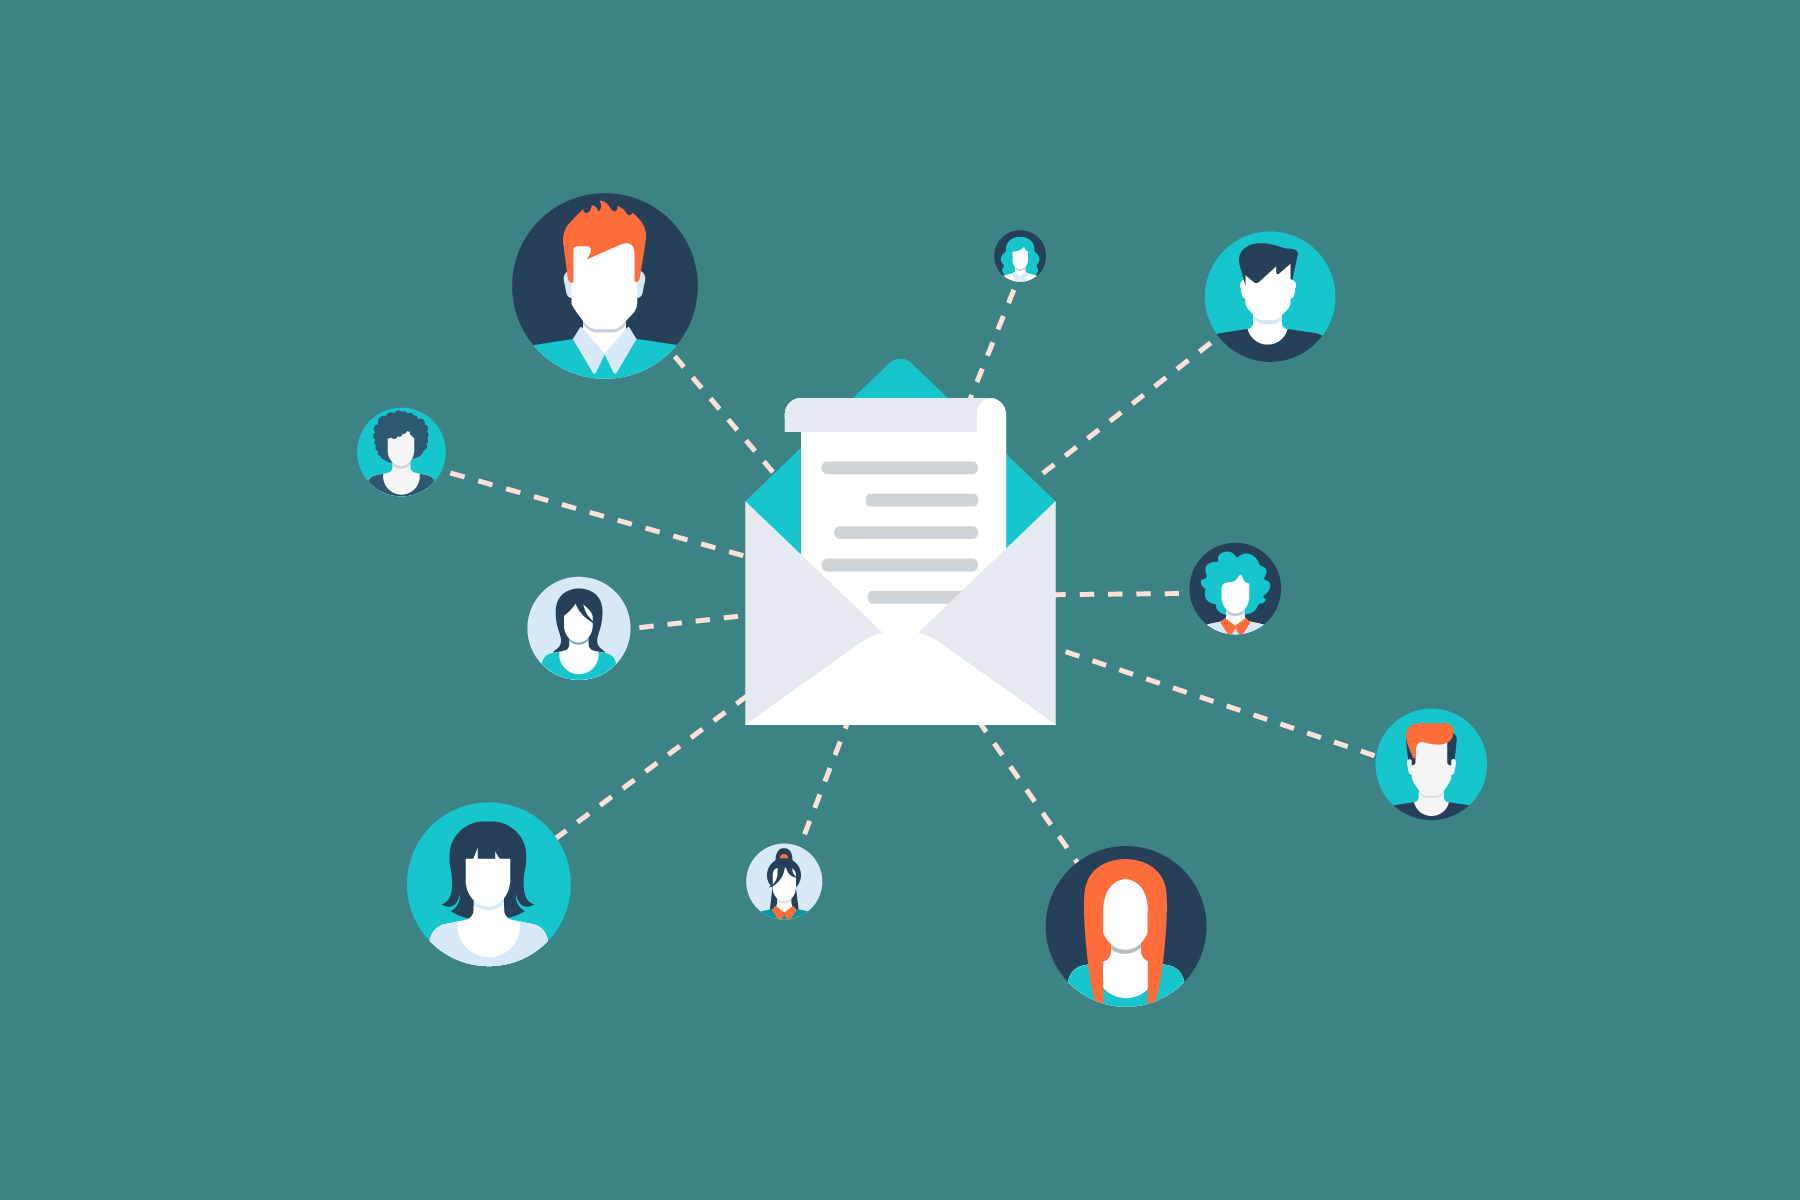 Improve your email deliverability: SPF, DKIM, and DMARC